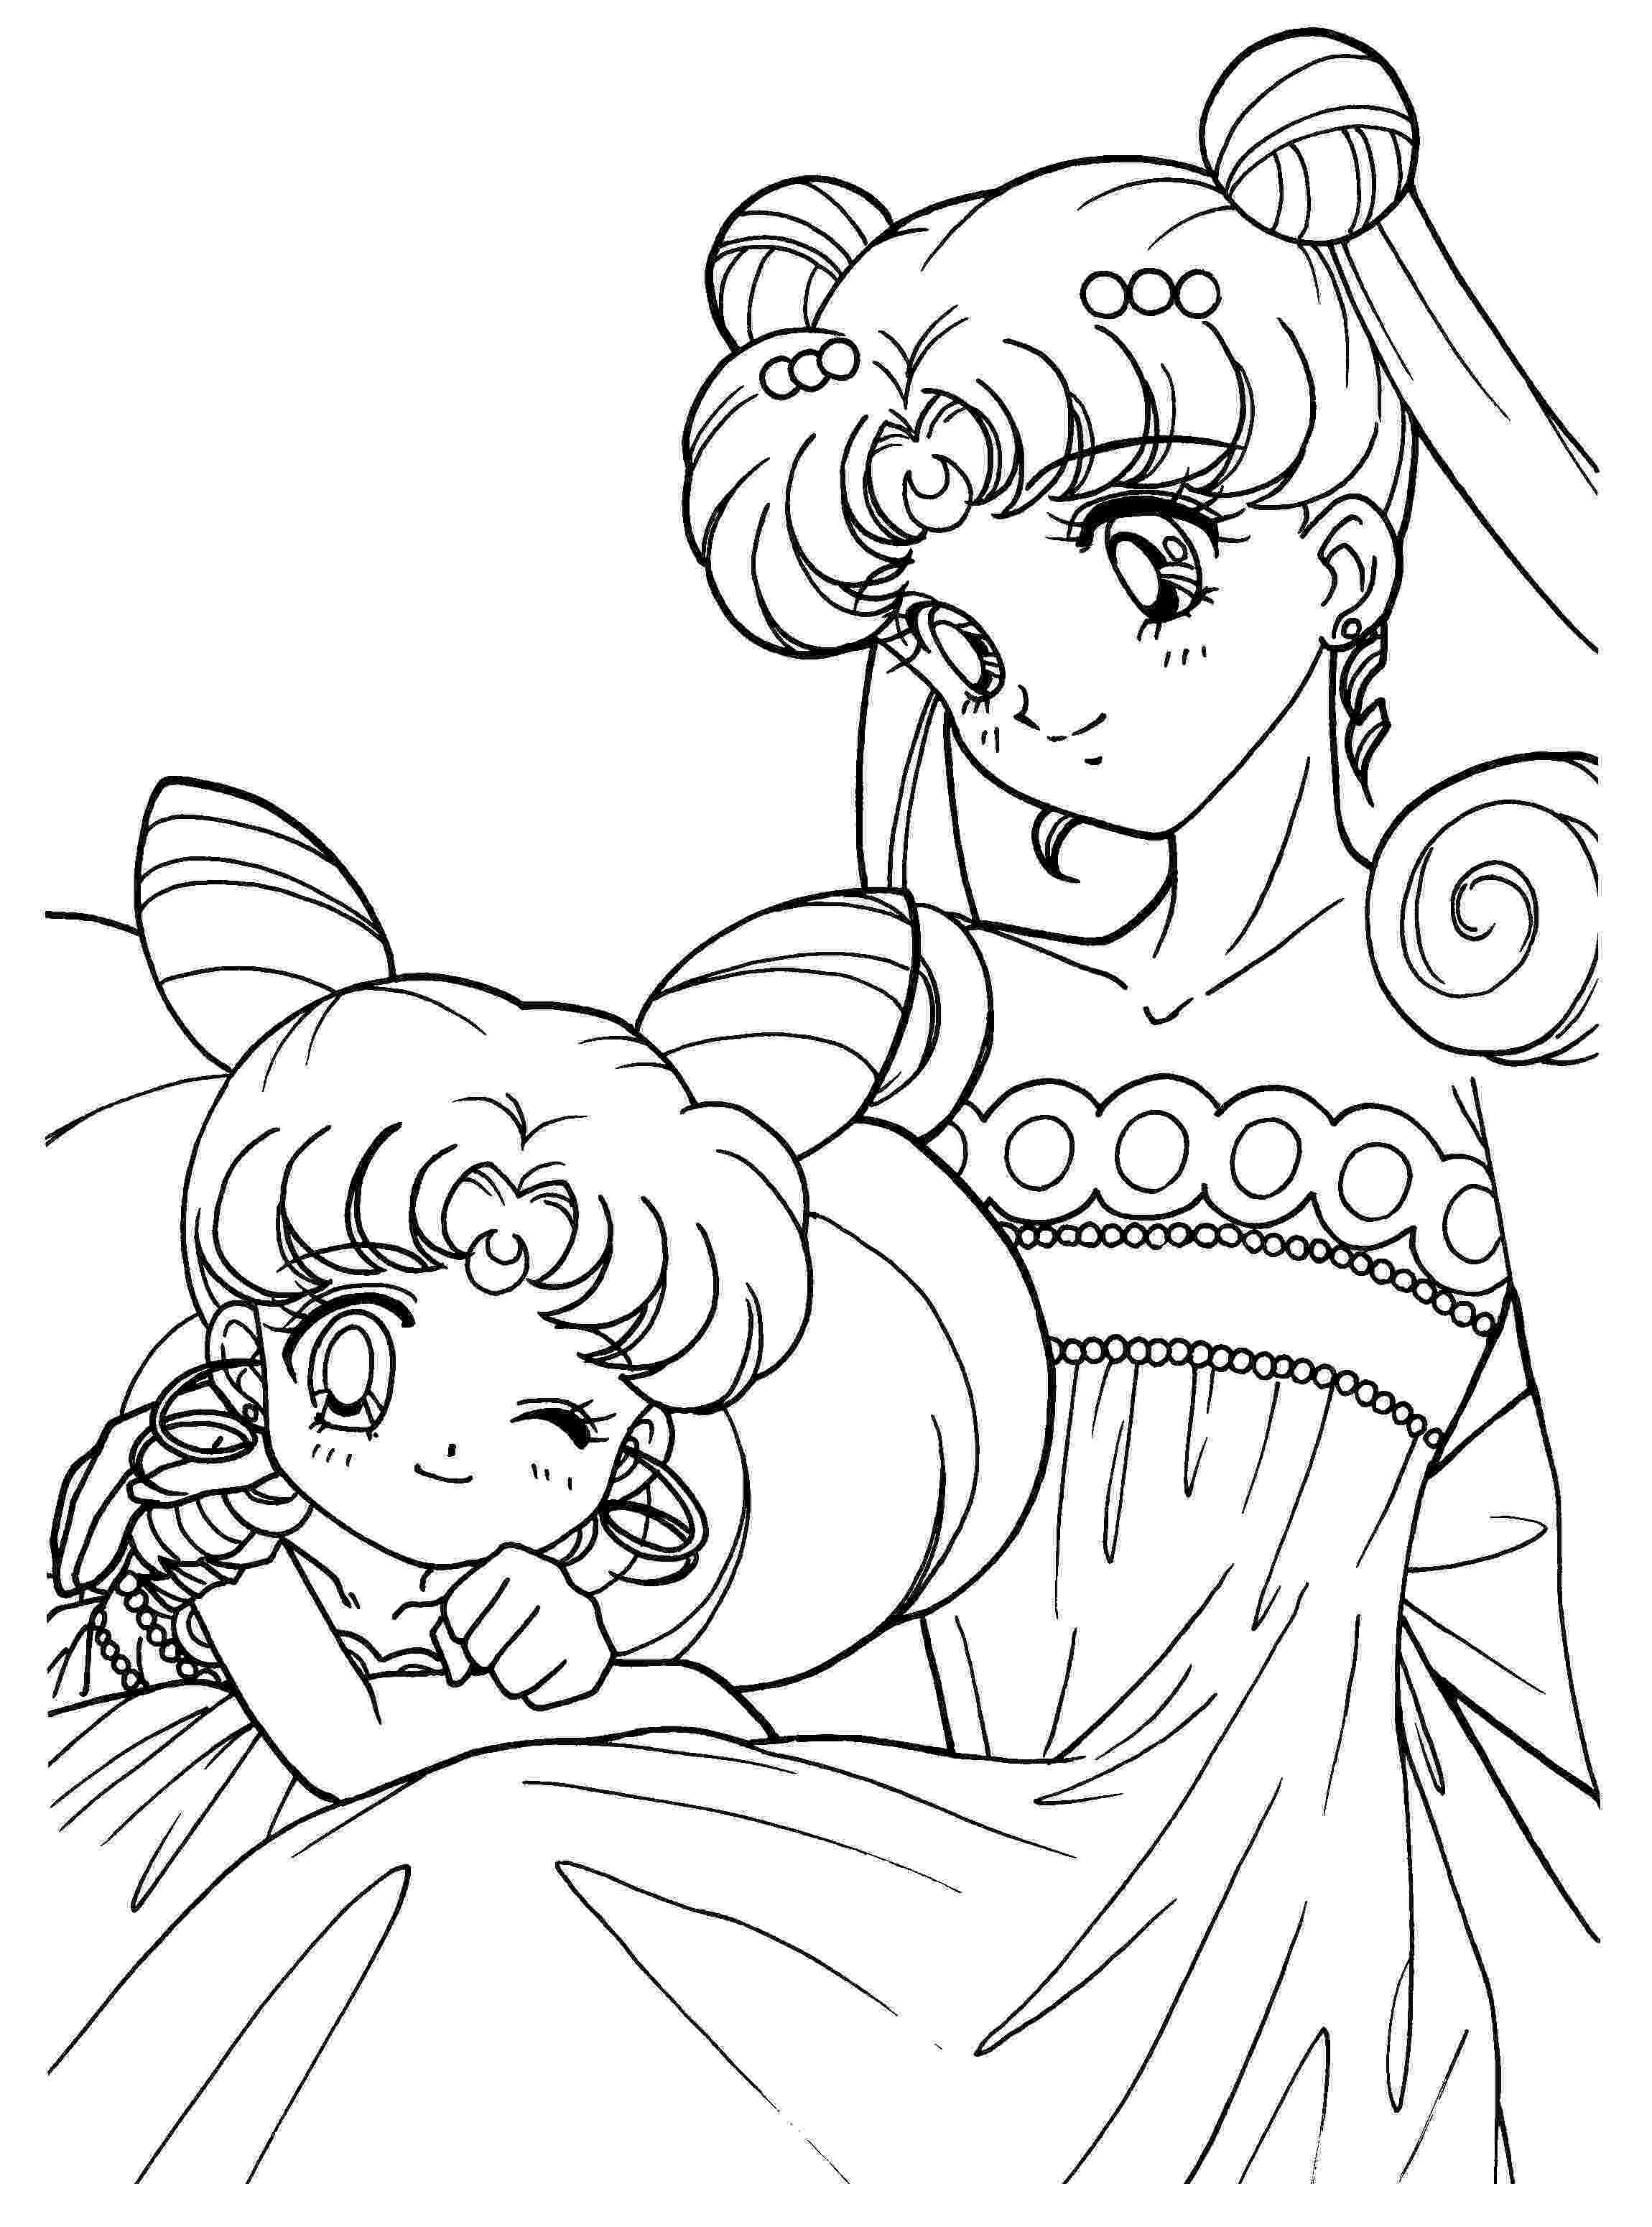 sailor moon coloring pages 104 best images about sailor moon coloring pages on moon coloring sailor pages